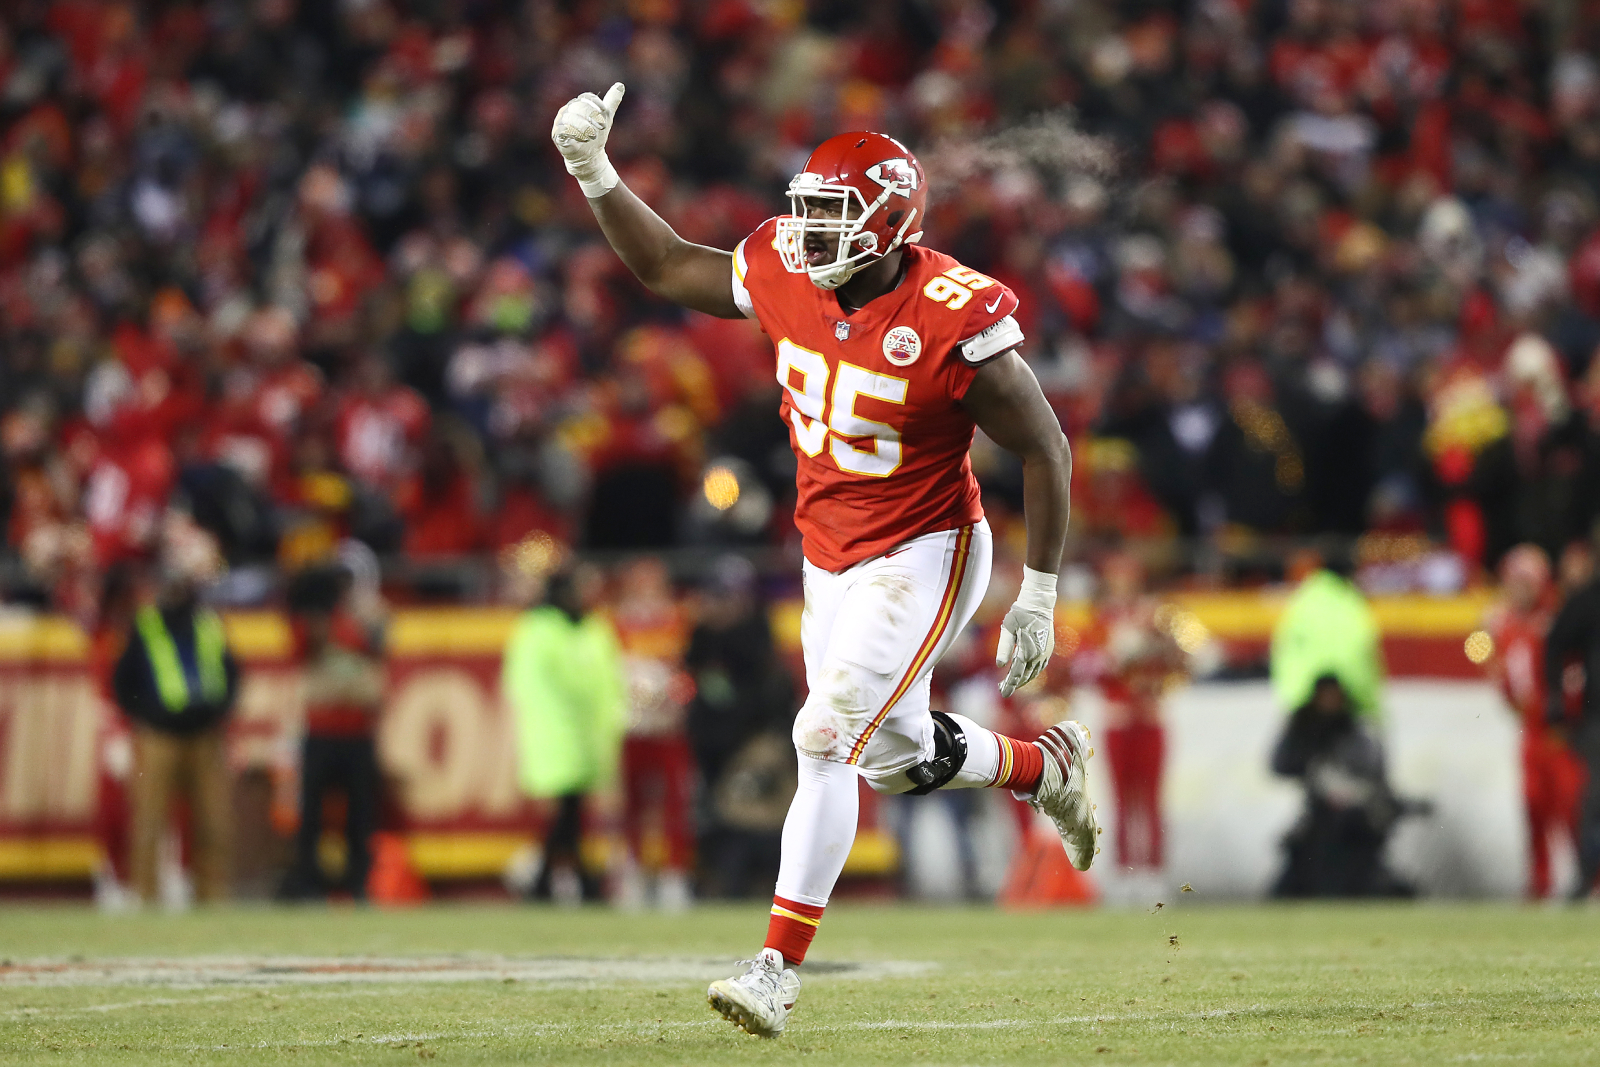 The Kansas City Chiefs already have a large target on themselves after winning the Super Bowl. Chris Jones just made that target larger.